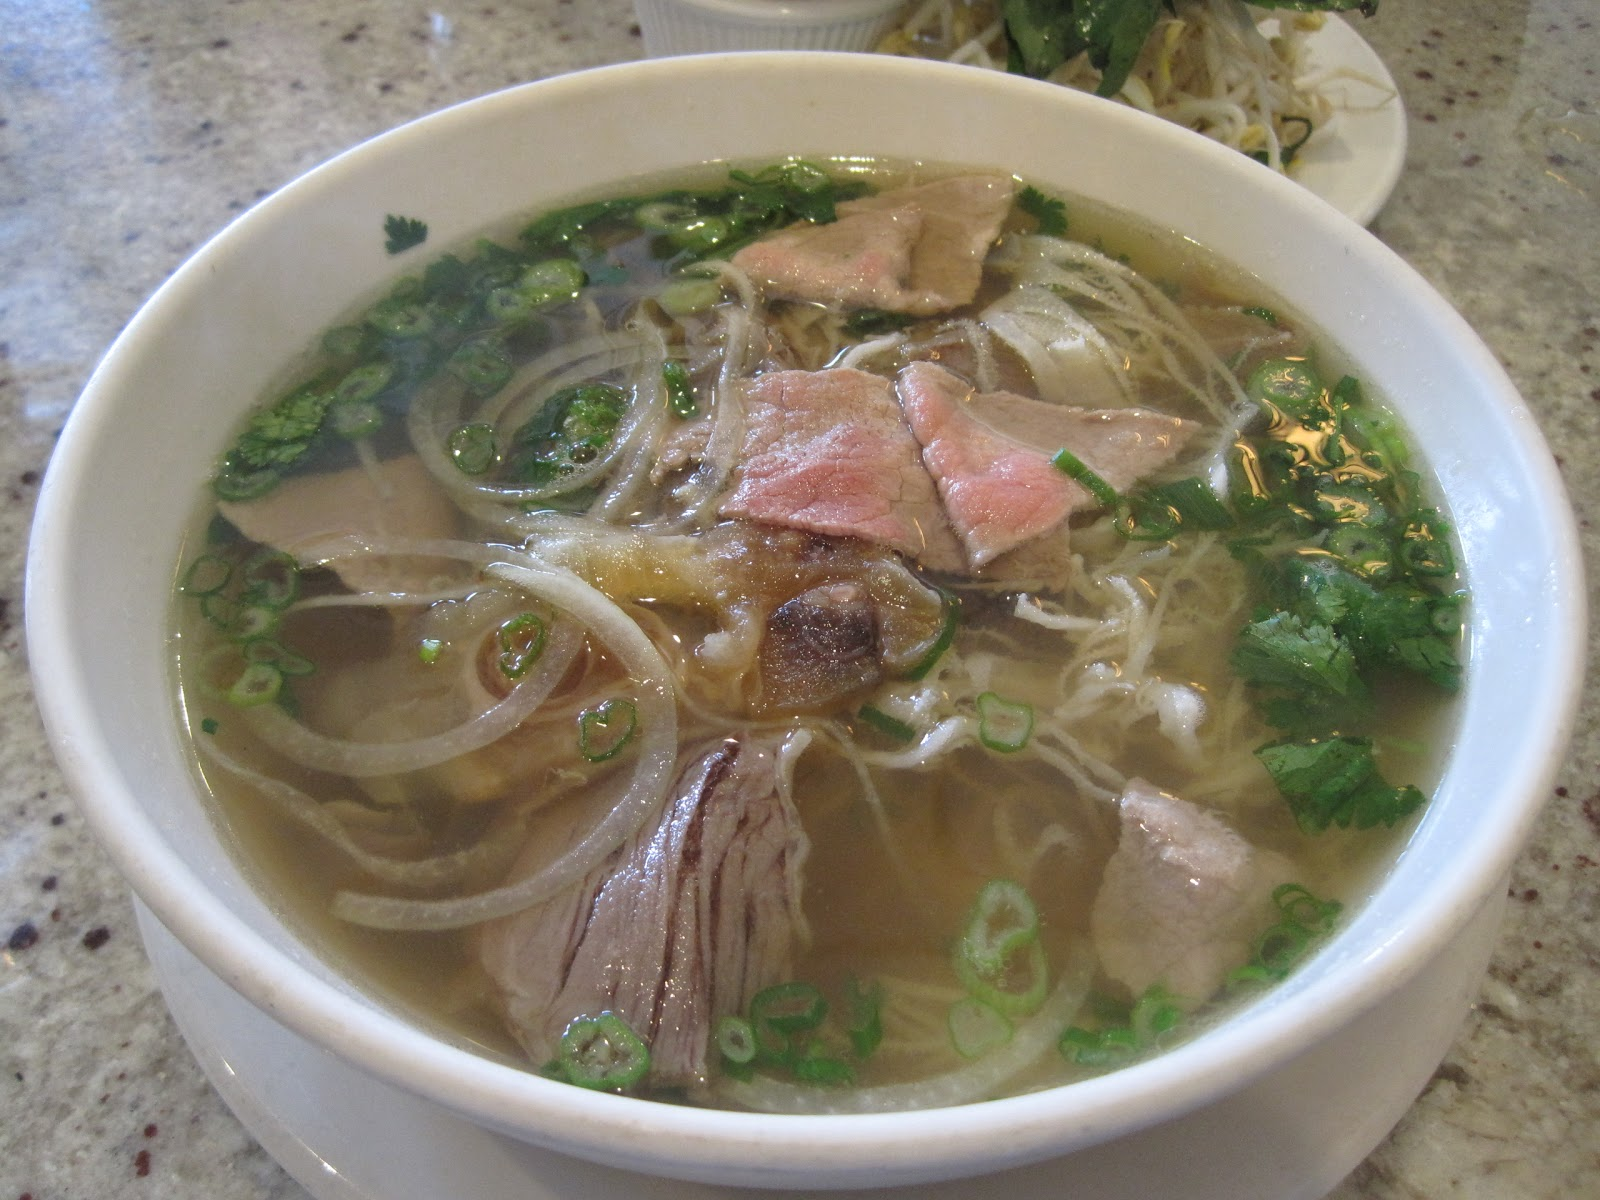 ... Chinese Food in Boston: BEST Pho (Vietnamese Noodle Soup) in Allston